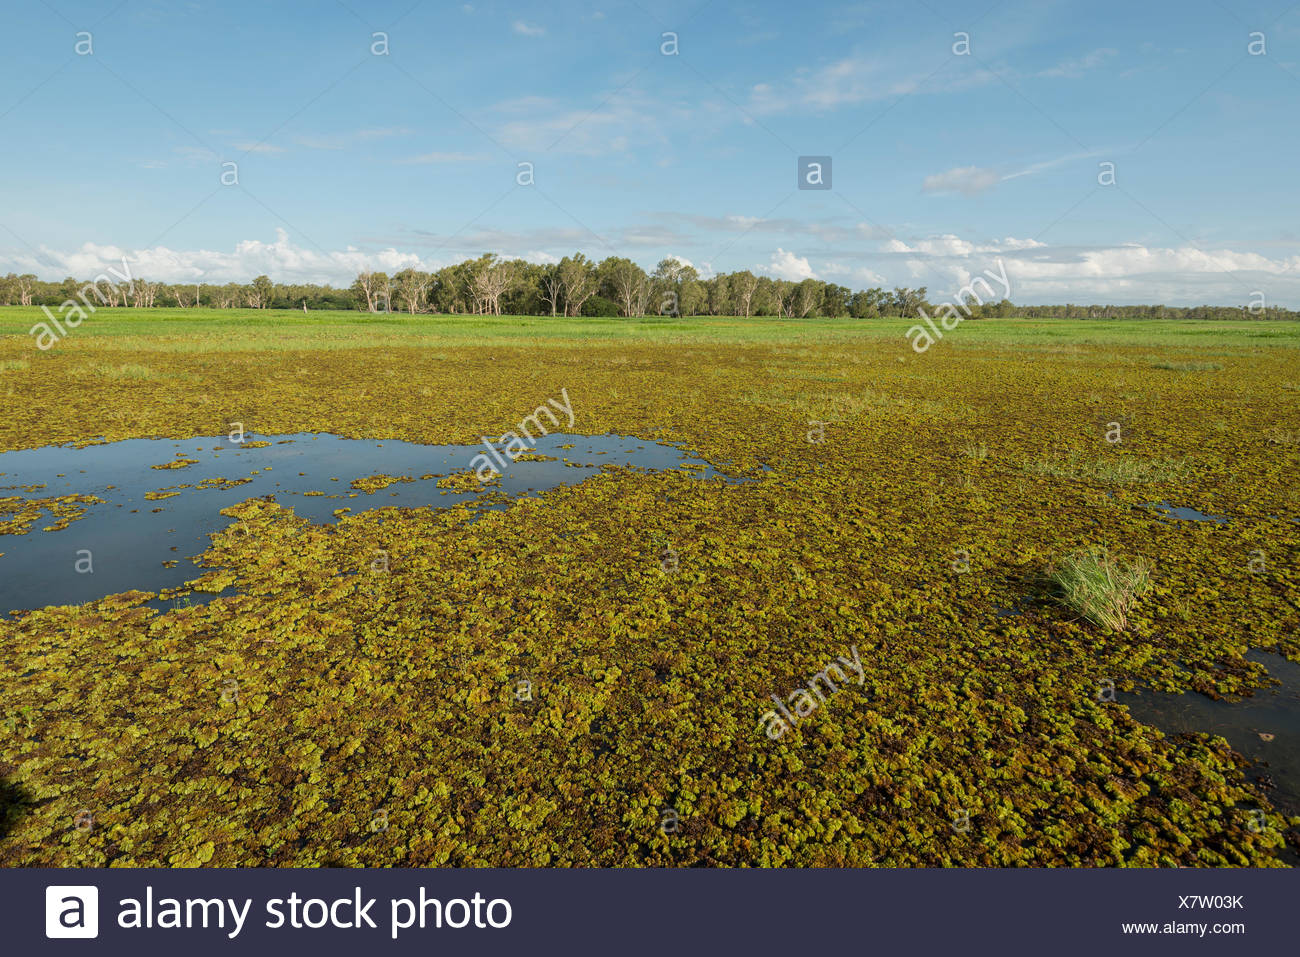 Giant sensitive tree (Mimosa pigra) weed covering 800 square km of Northern Territories wetlands, Northern Territory, Australia. - Stock Image